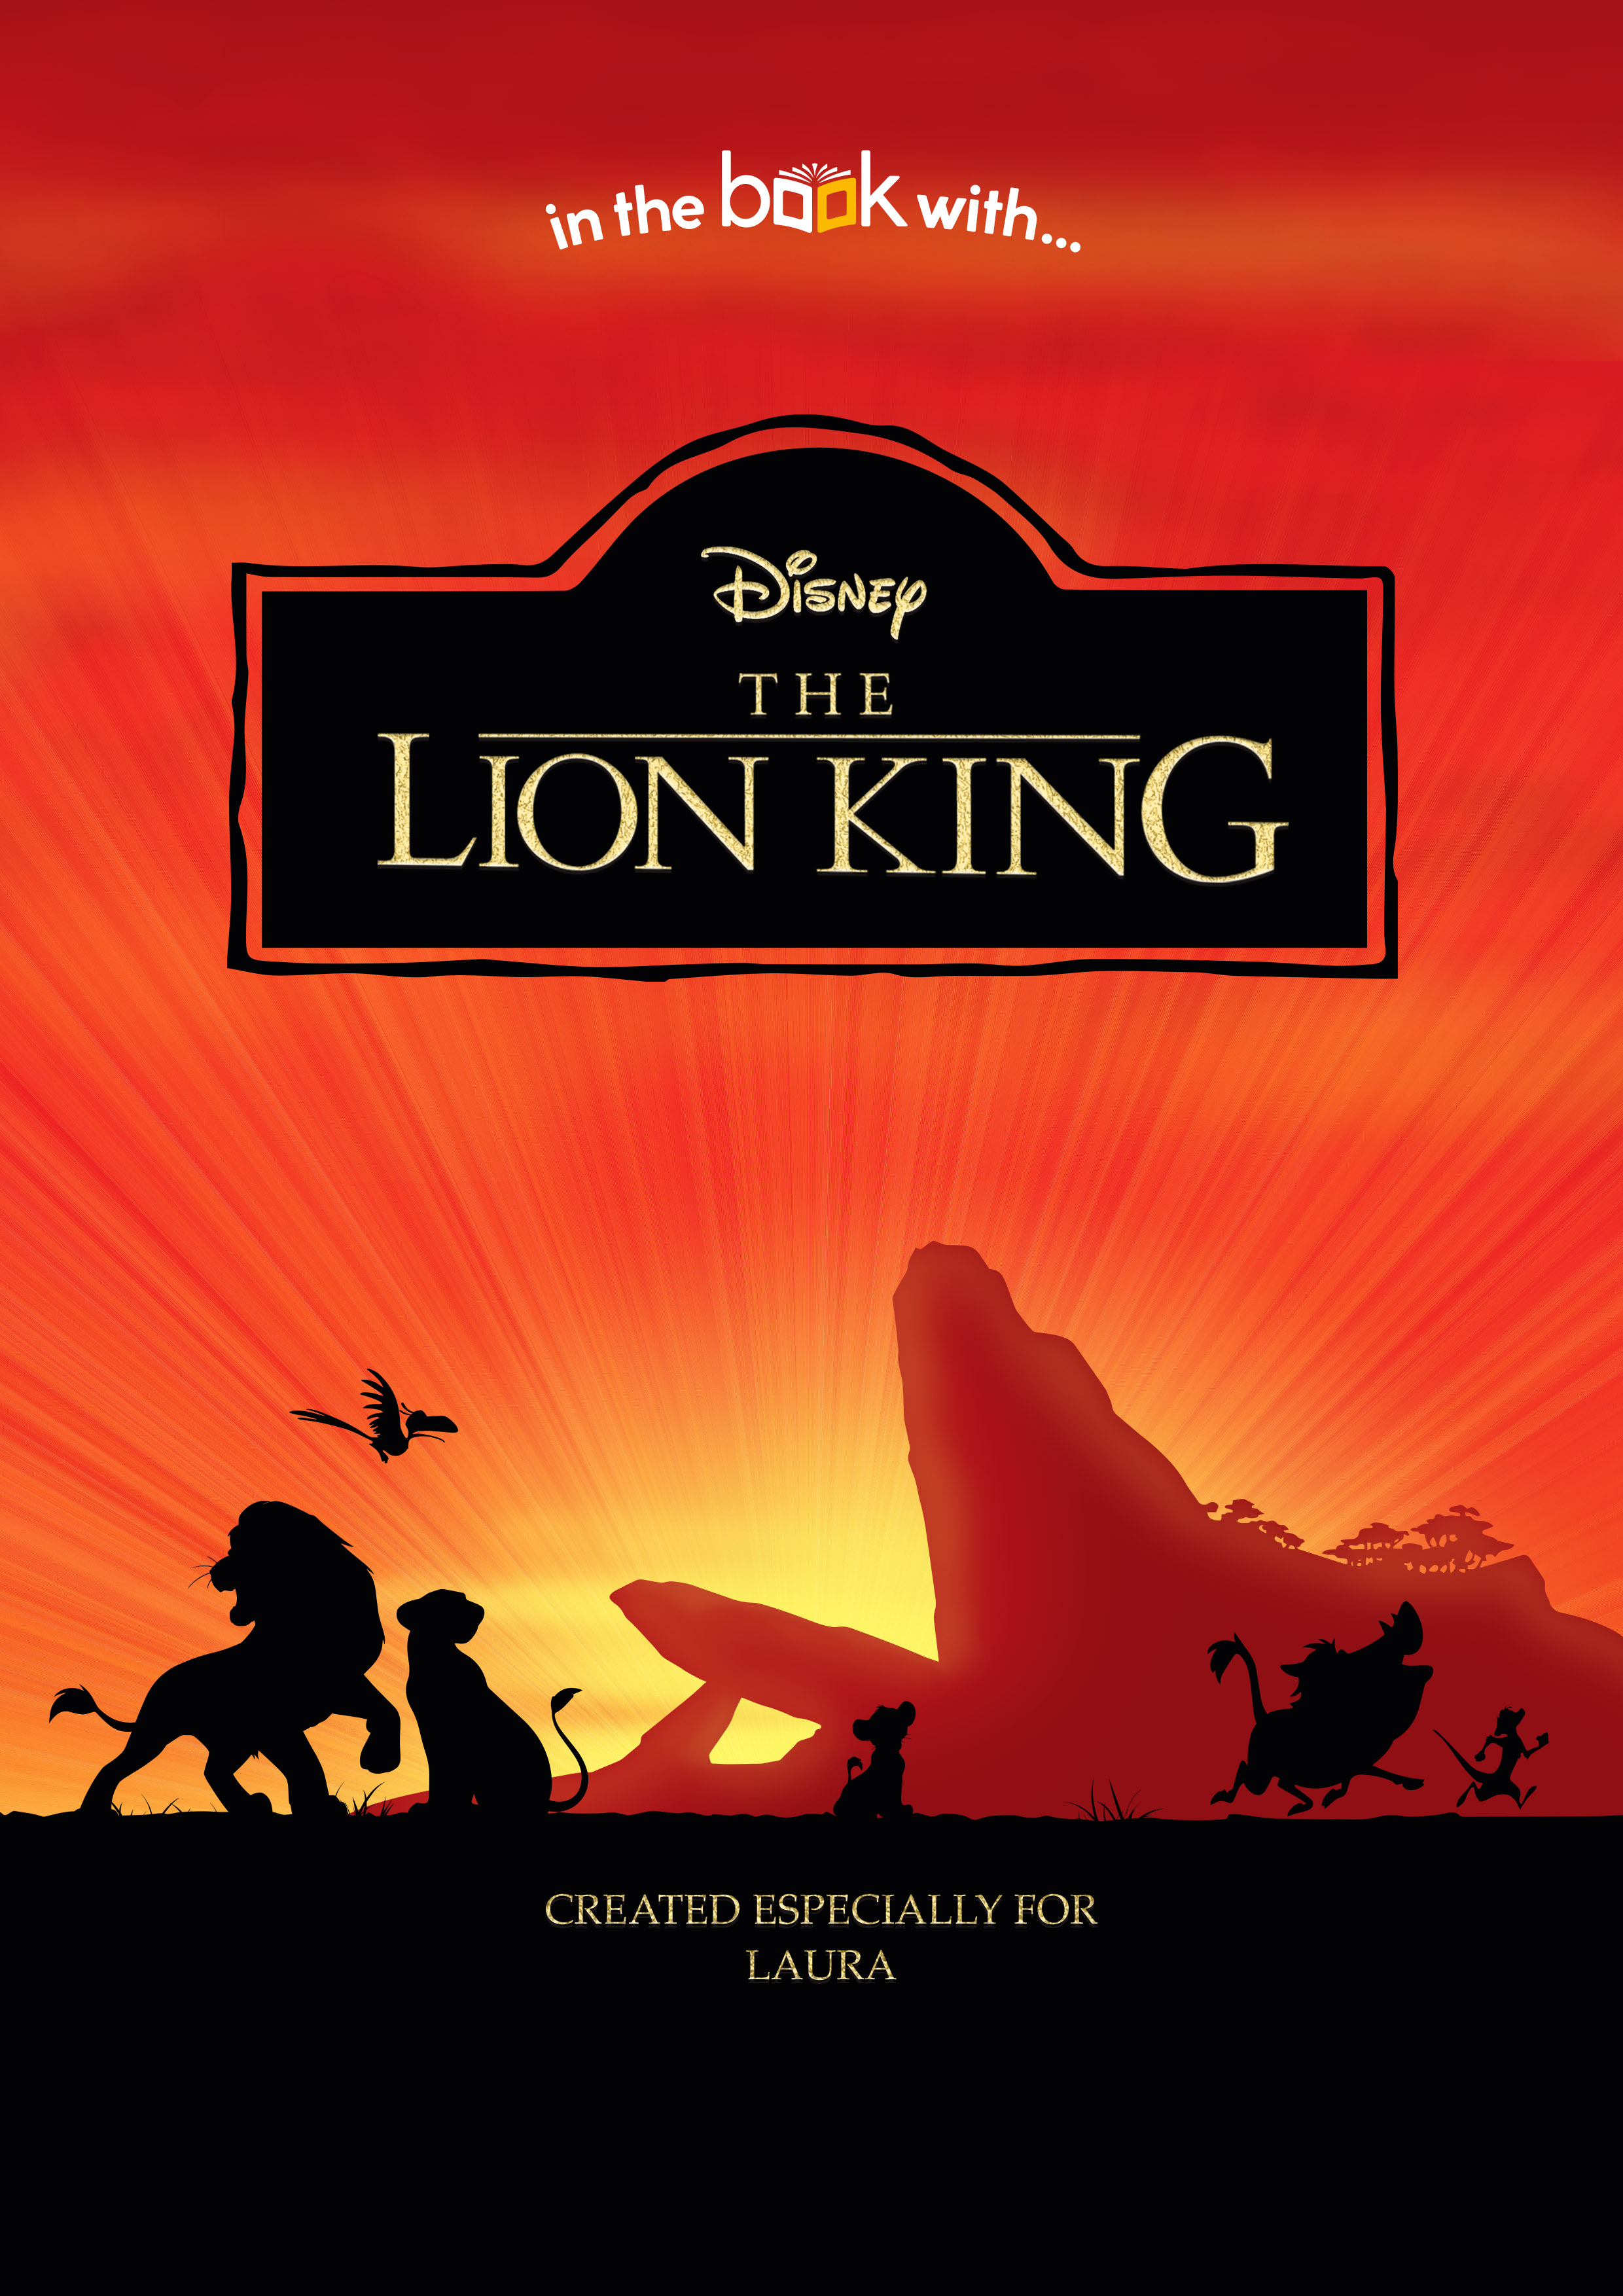 lion king cover image